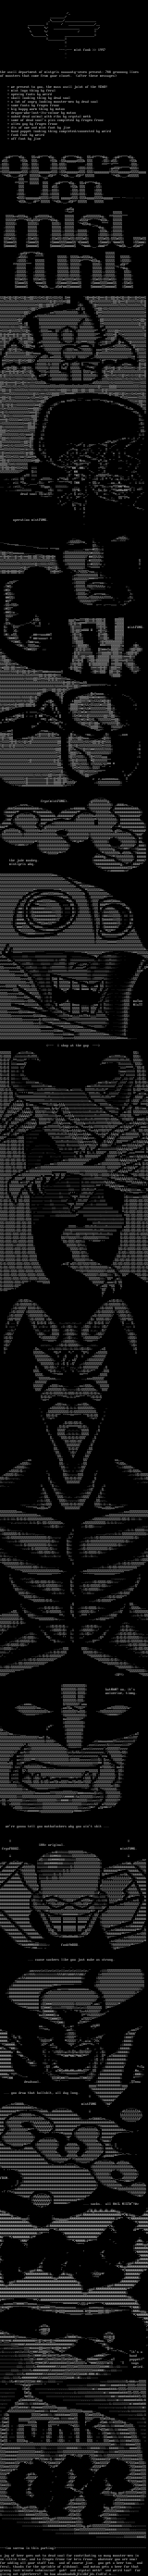 greyness! (operation: mistfunk) by ascii people